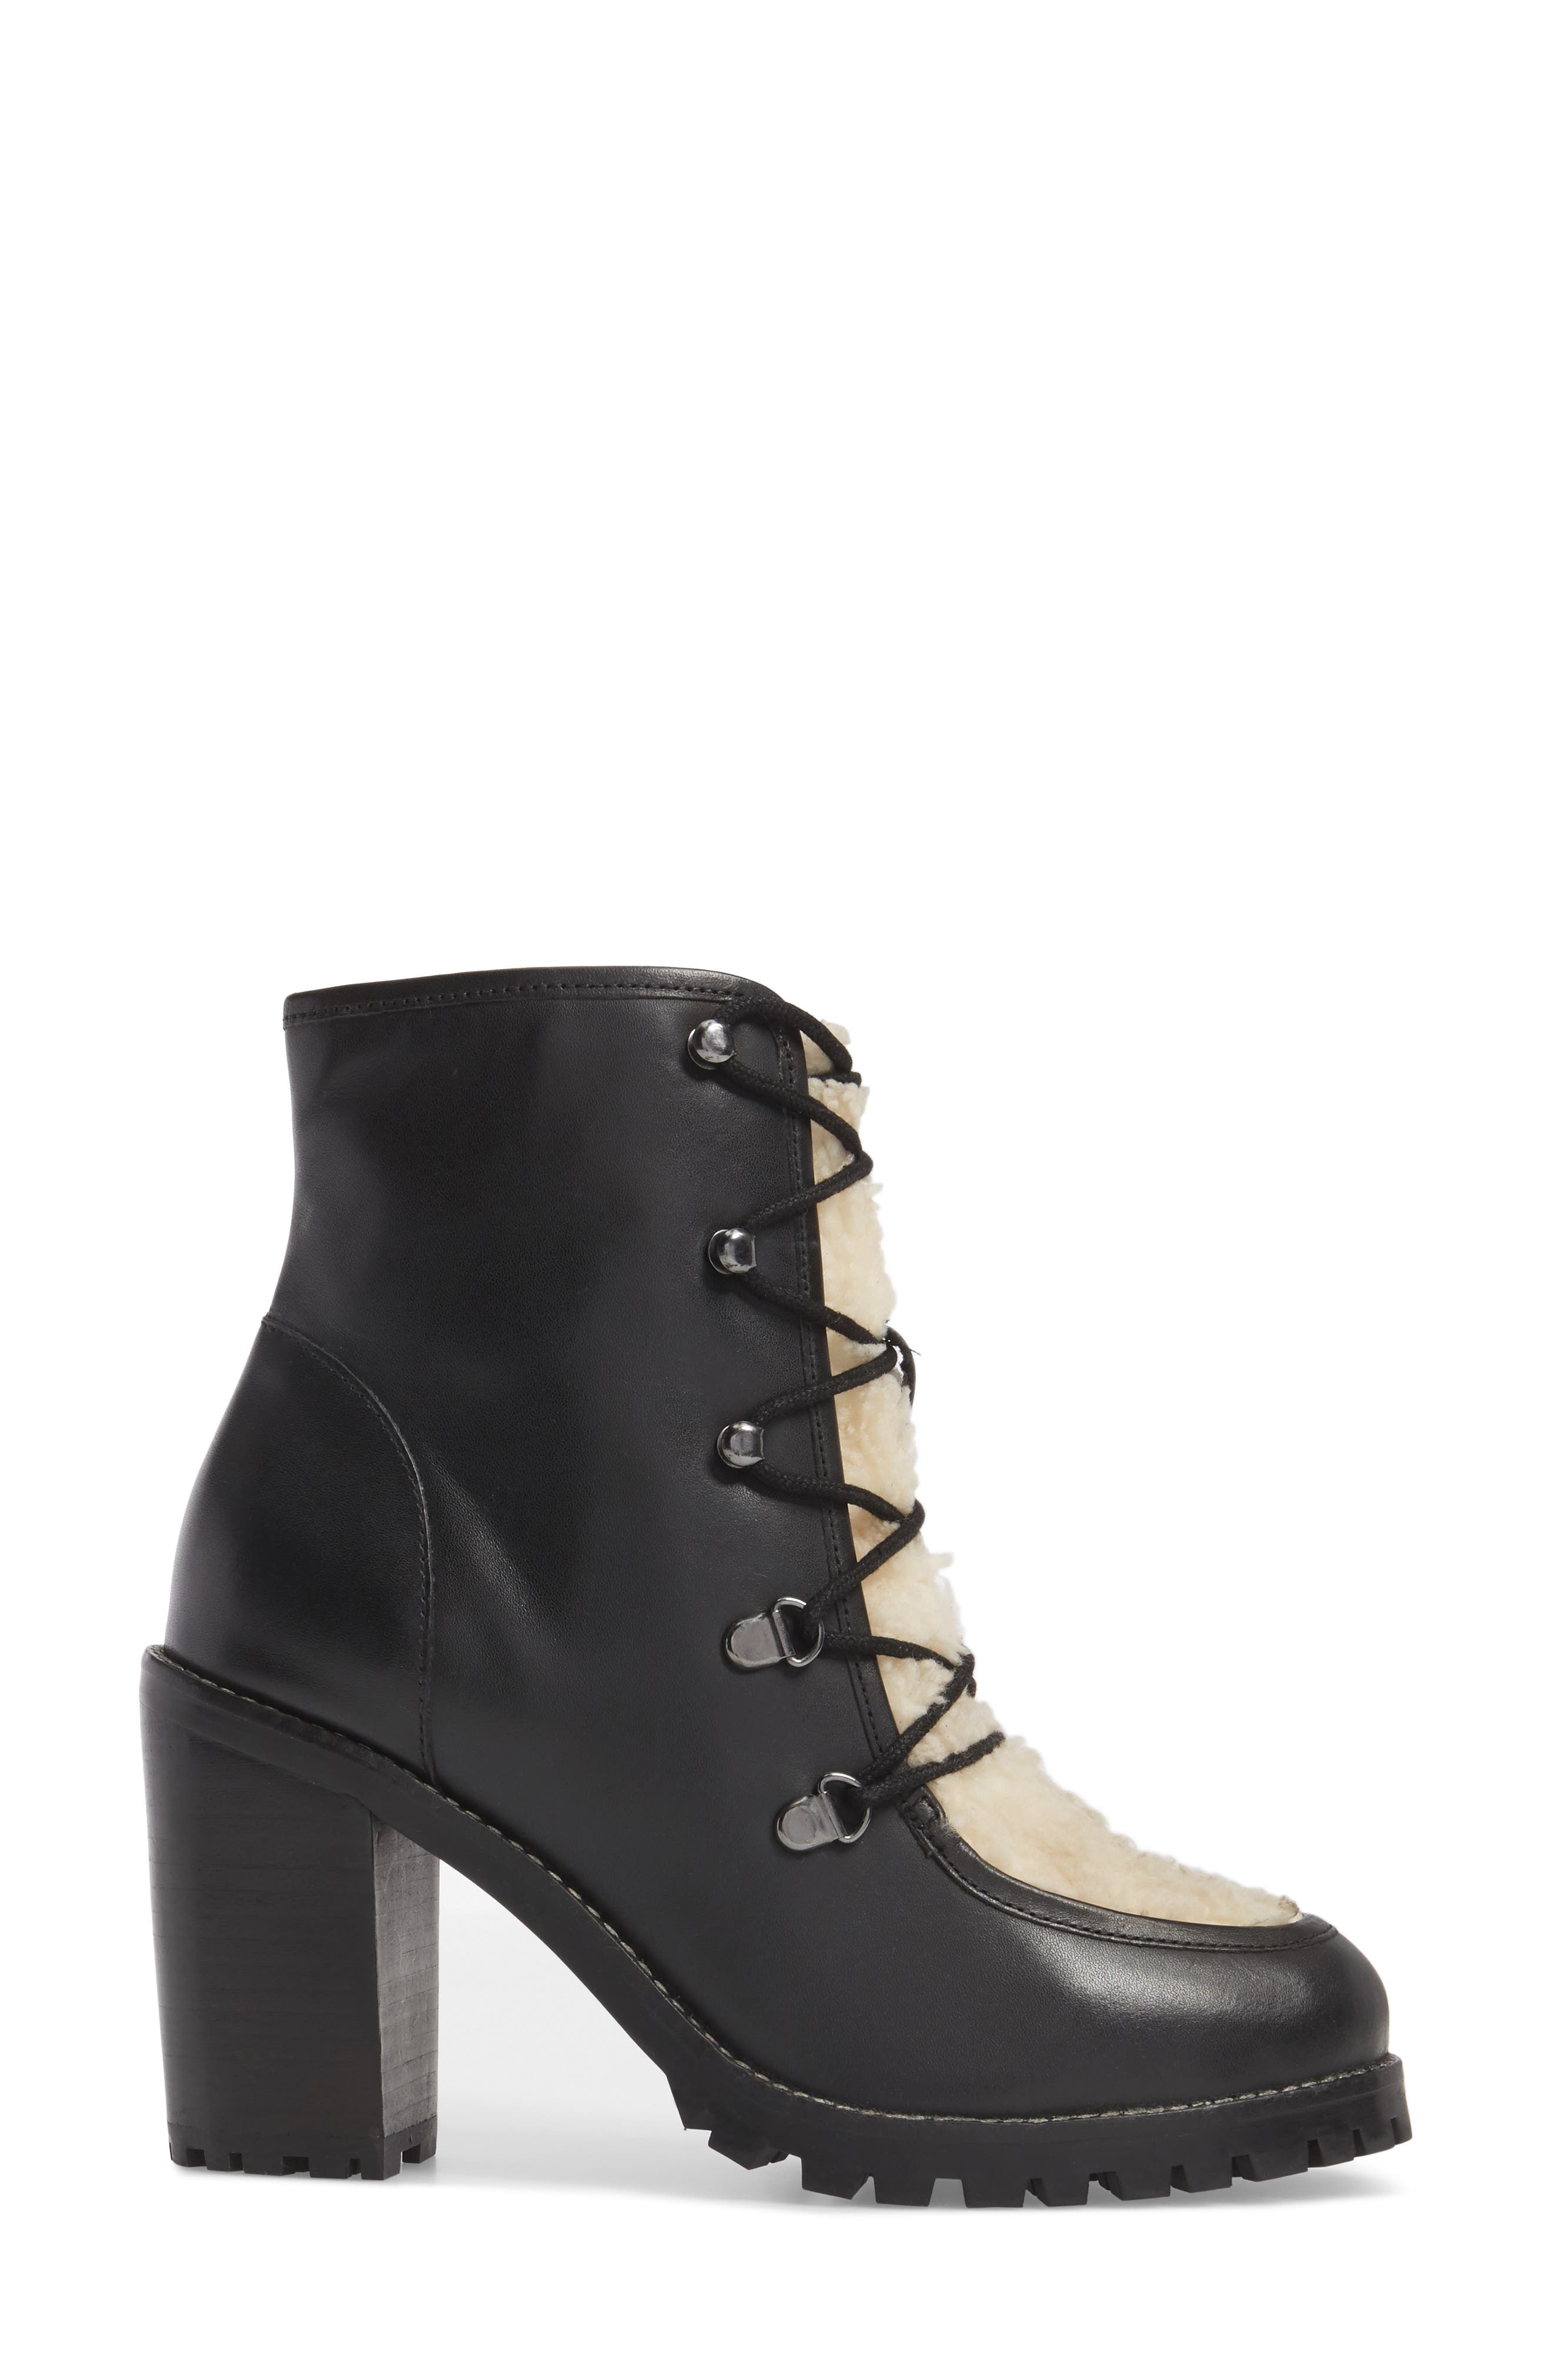 Theater Lace-Up Bootie,                             Alternate thumbnail 3, color,                             001